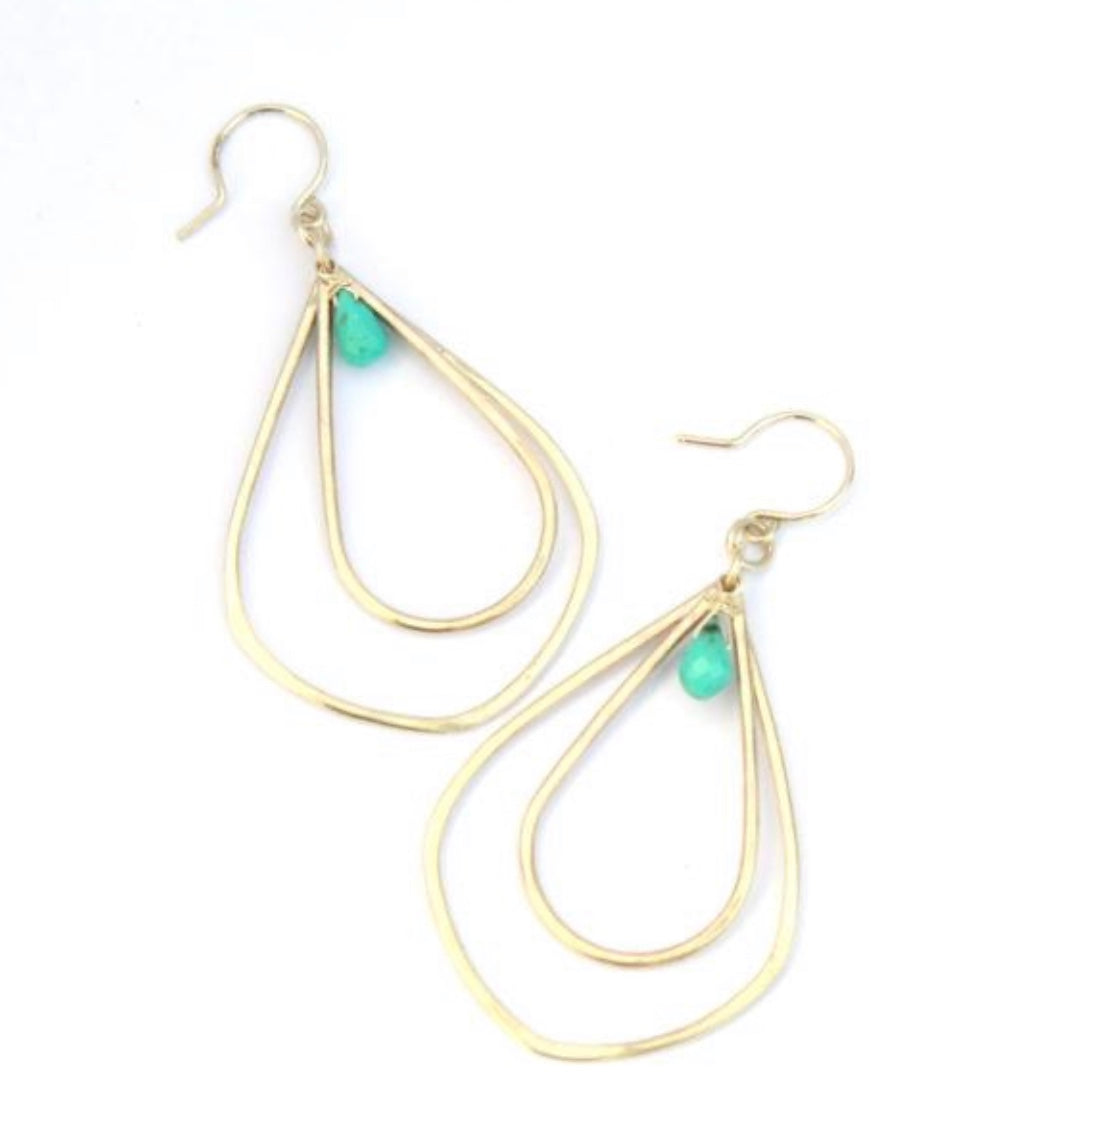 Calla Lilly Earrings With Turquoise